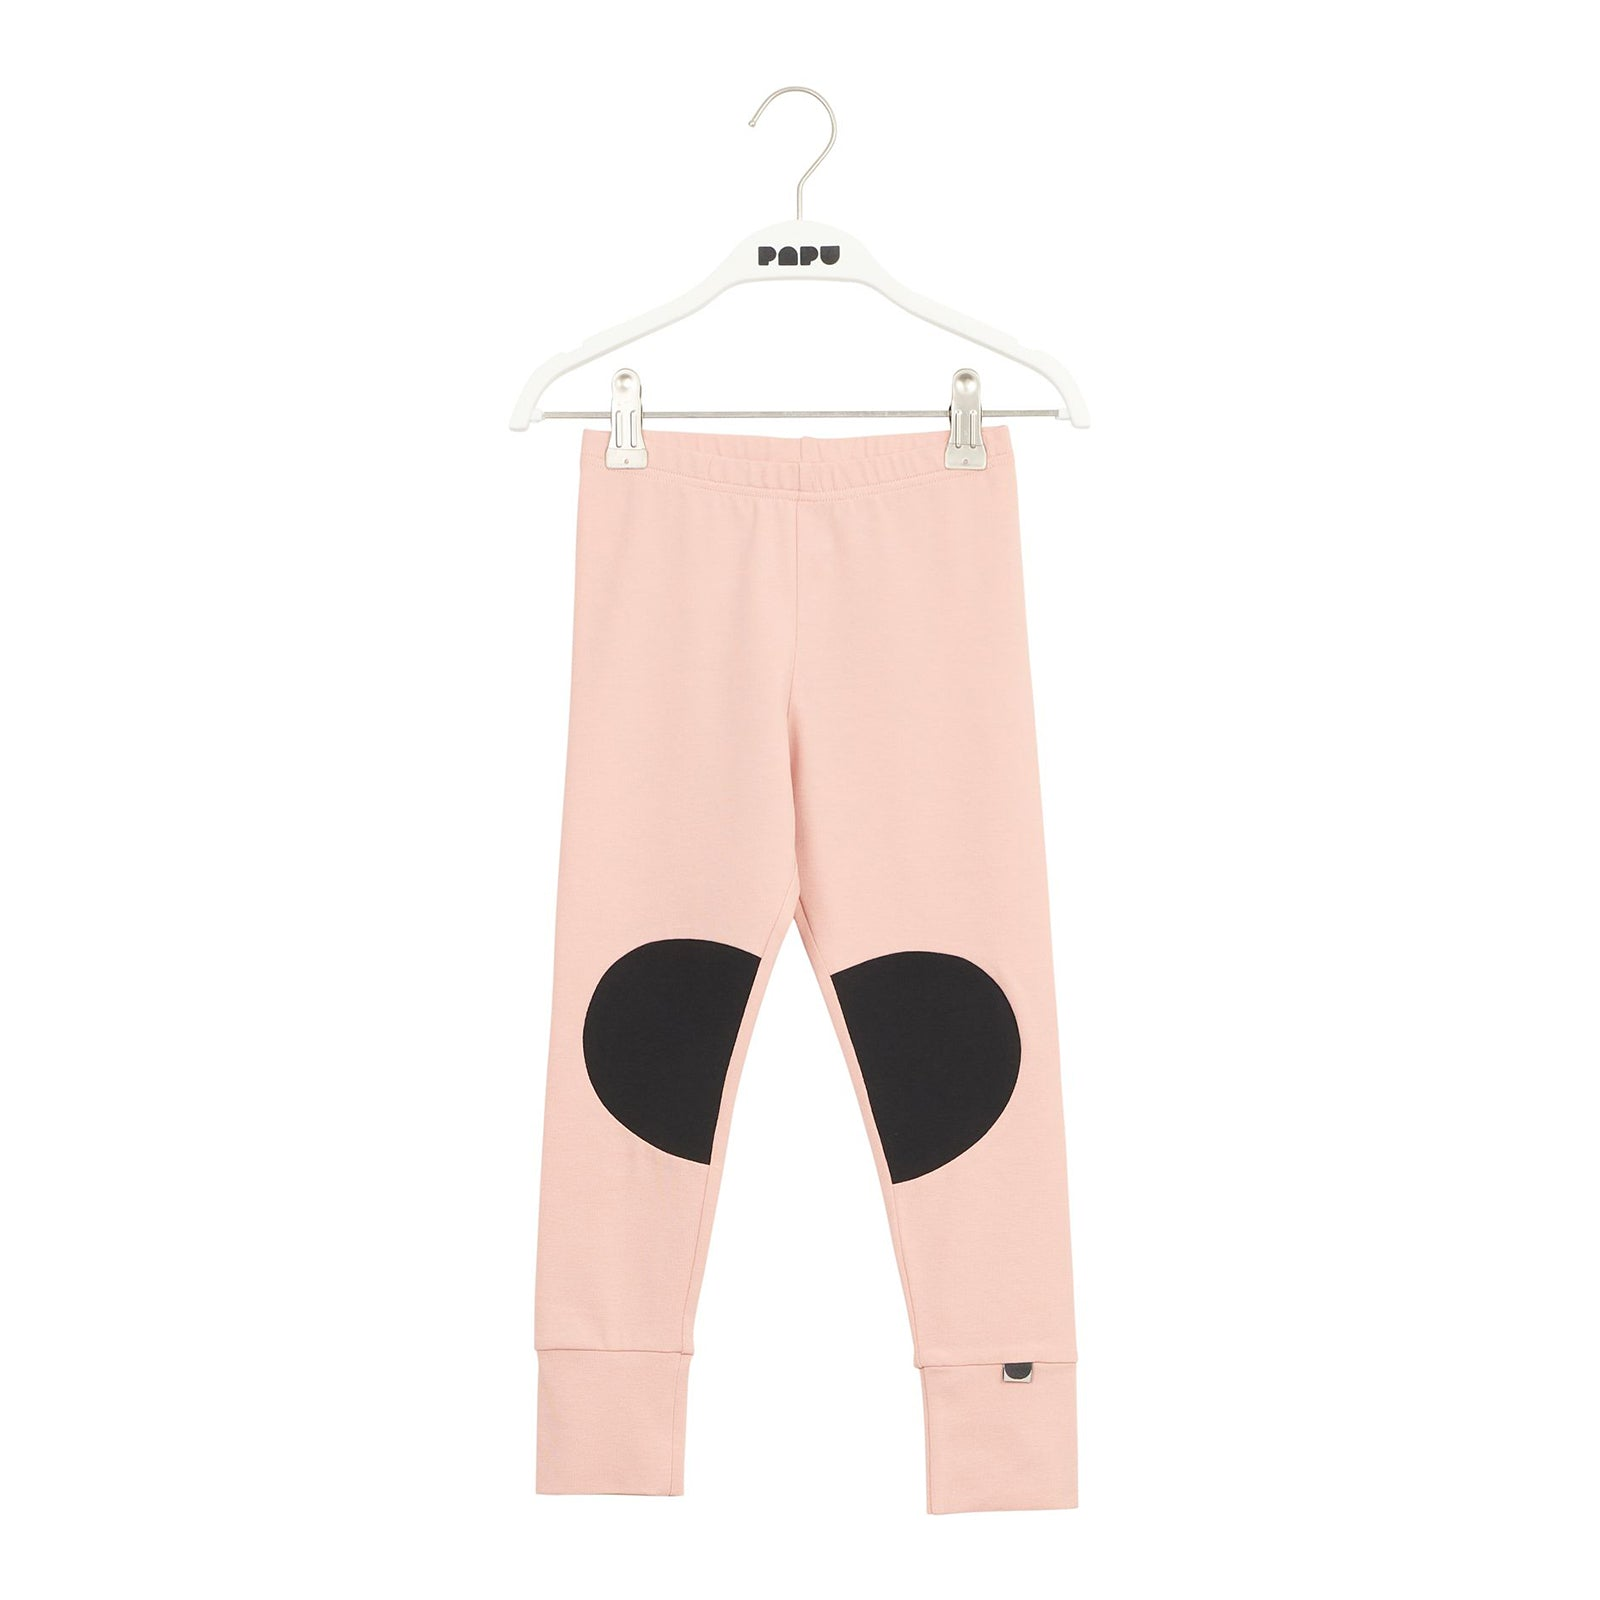 Papu paikka leggarit, dusty pink/black